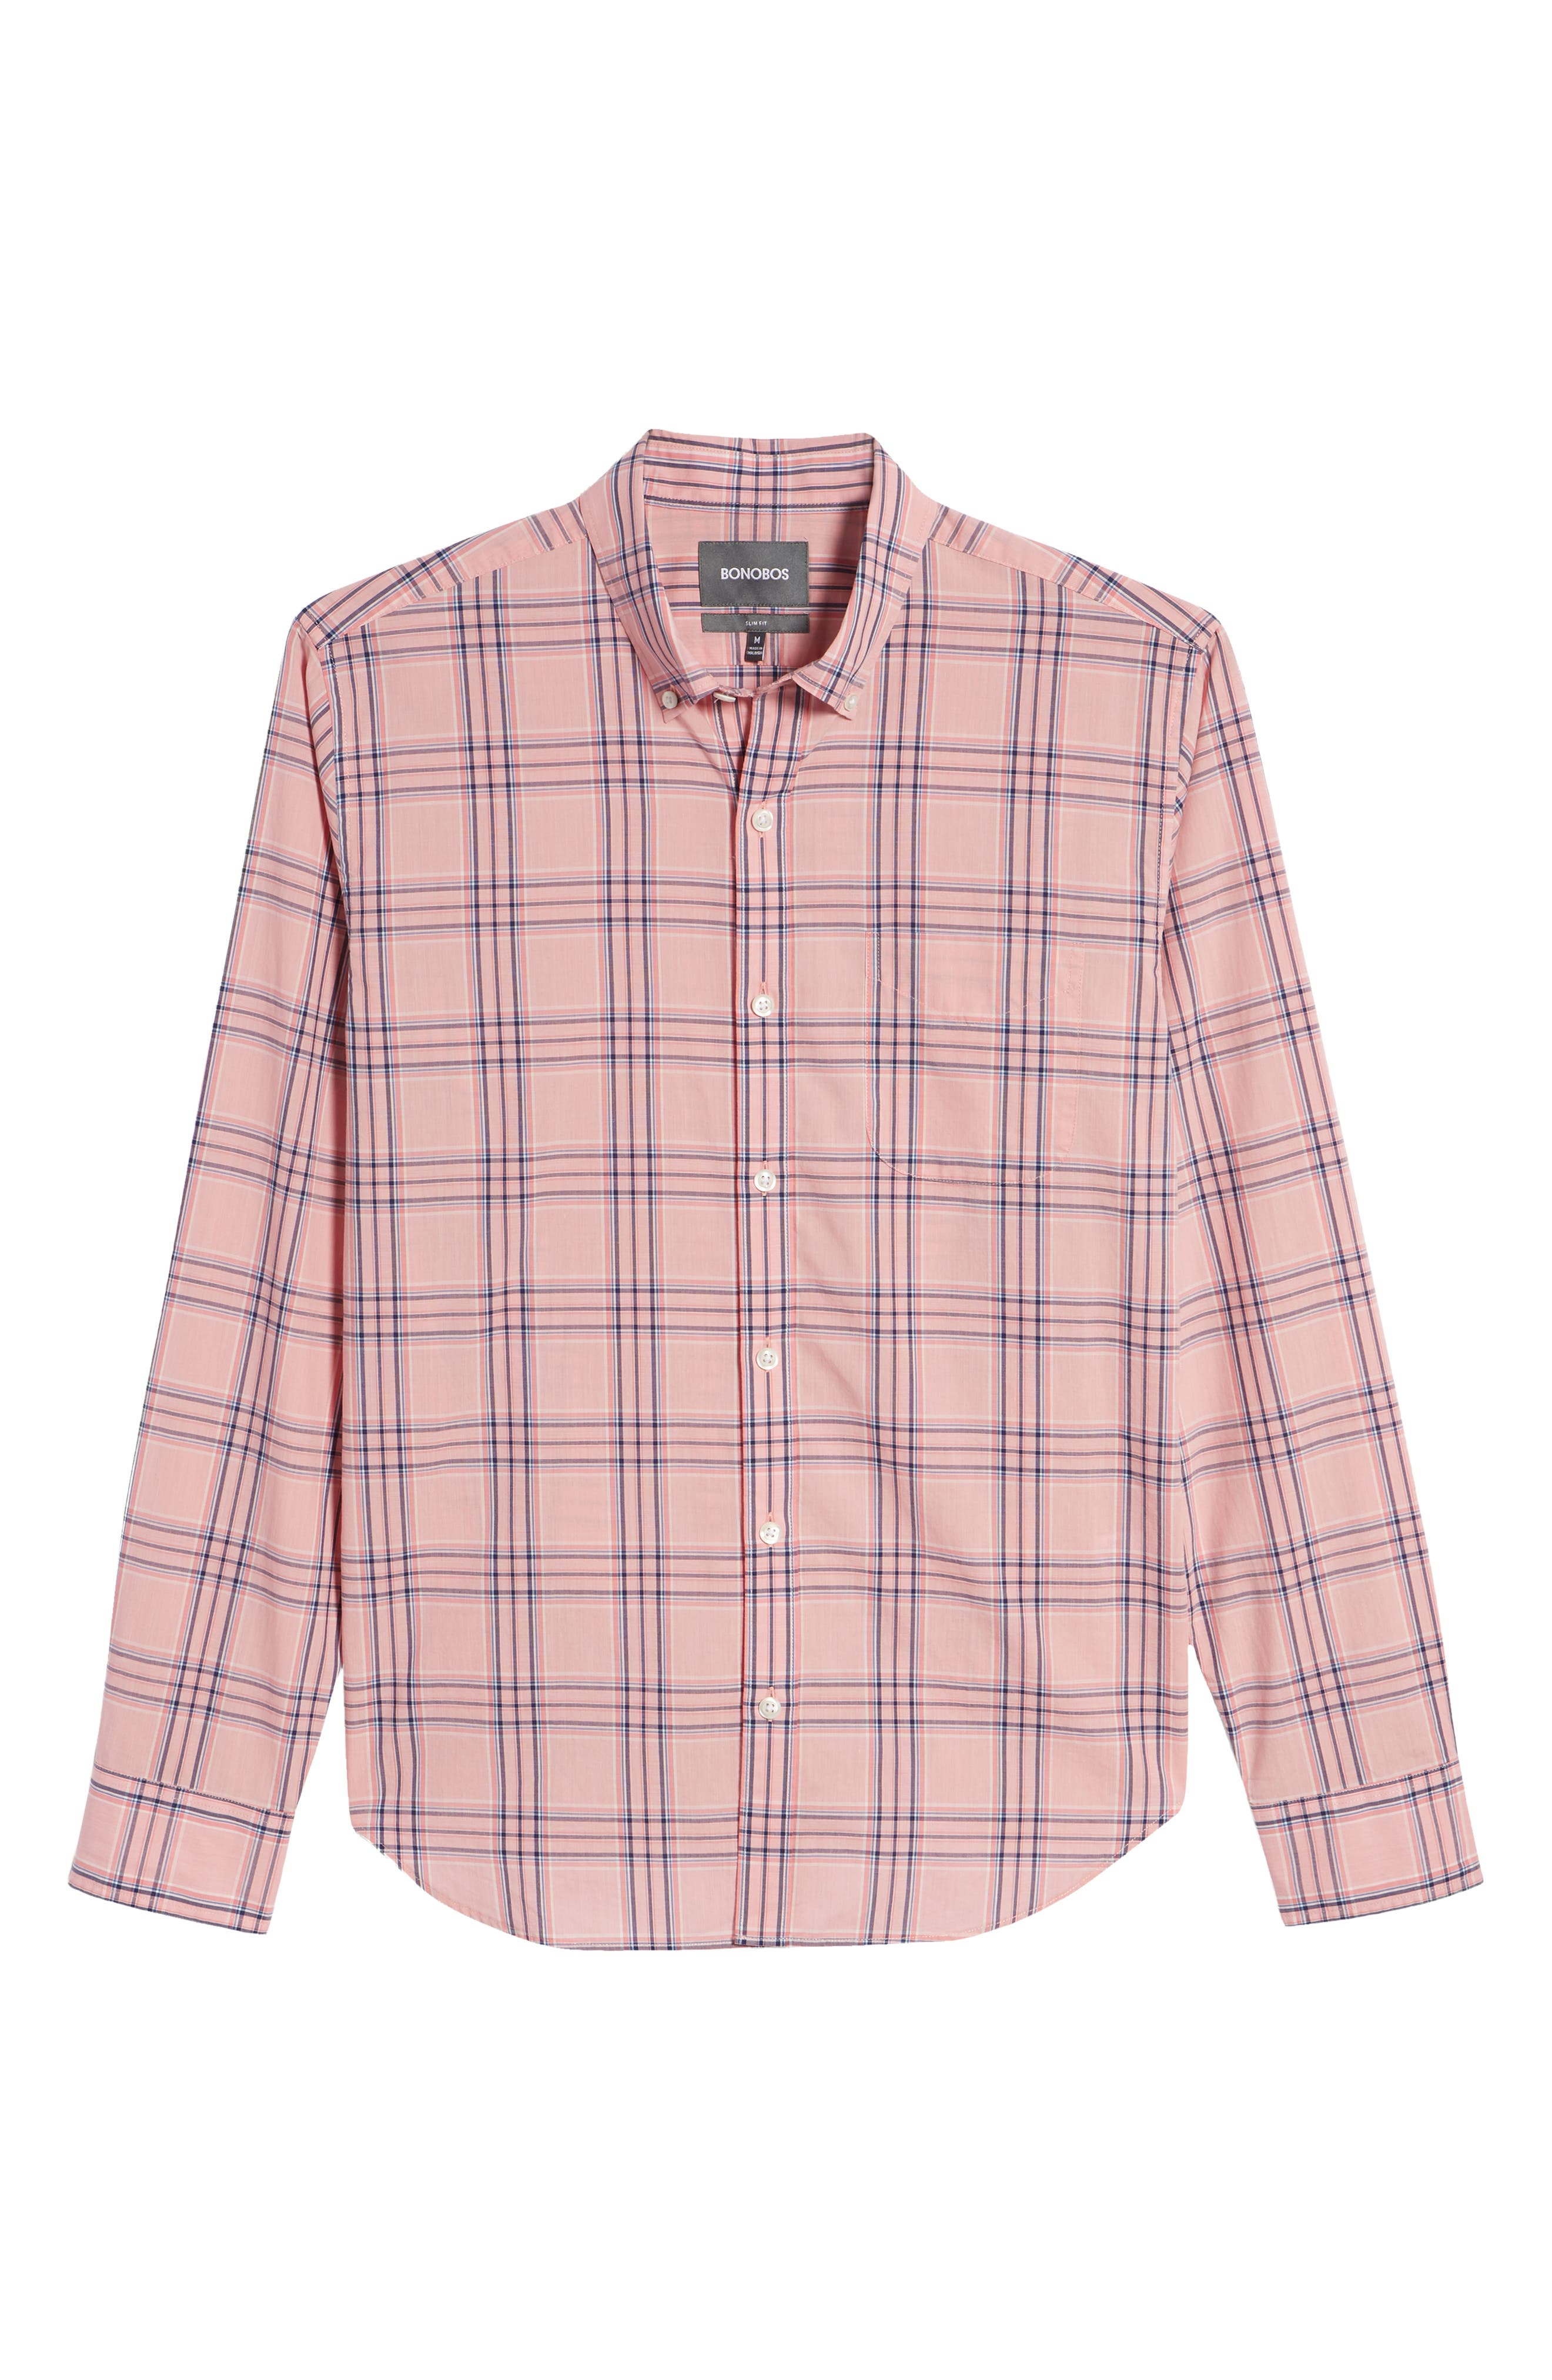 Summerweight Slim Fit Check Sport Shirt,                             Alternate thumbnail 6, color,                             Pearson Check - Peony Coral